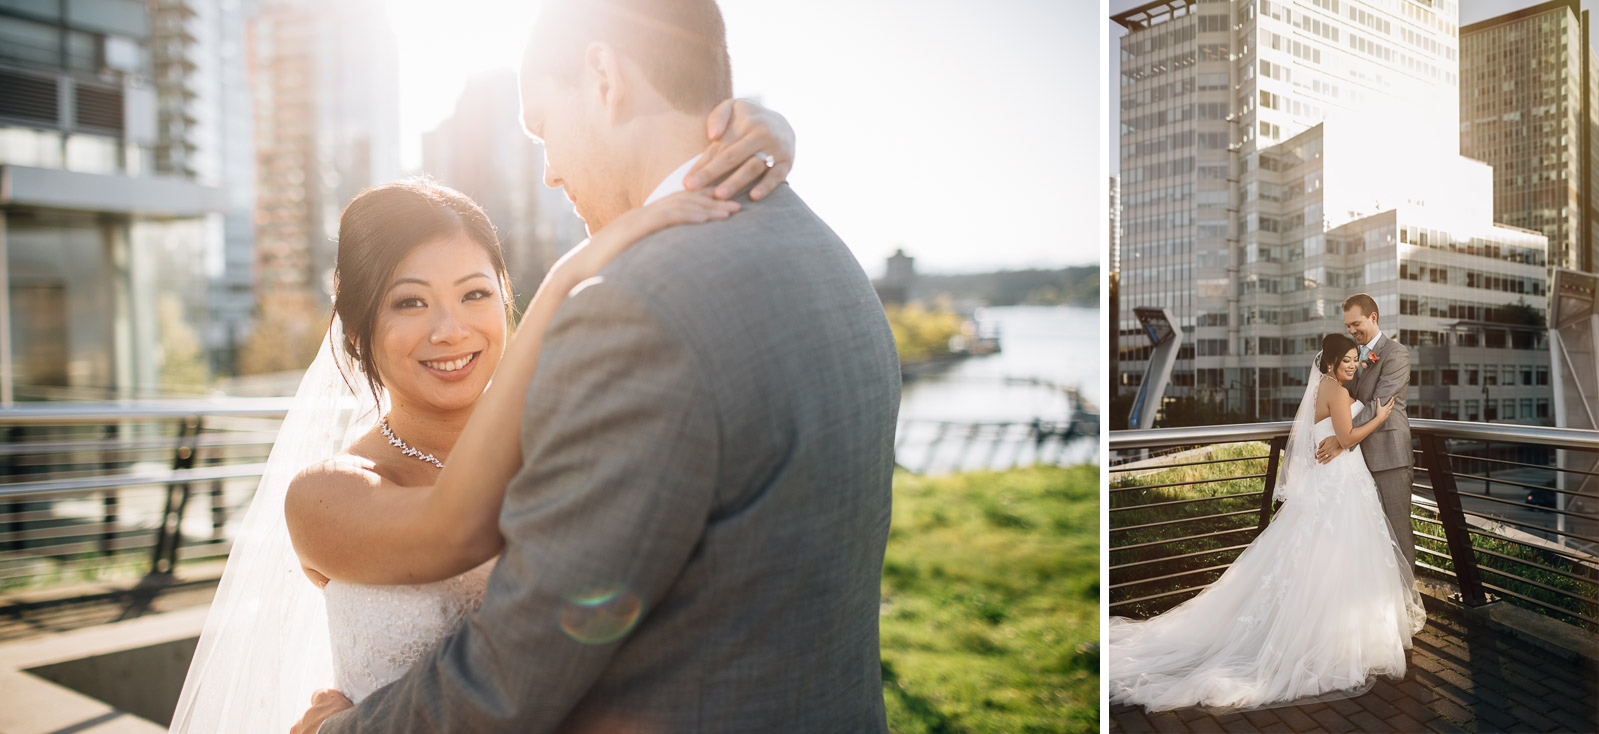 bride and groom portrait vancouver coal harbour wedding photography